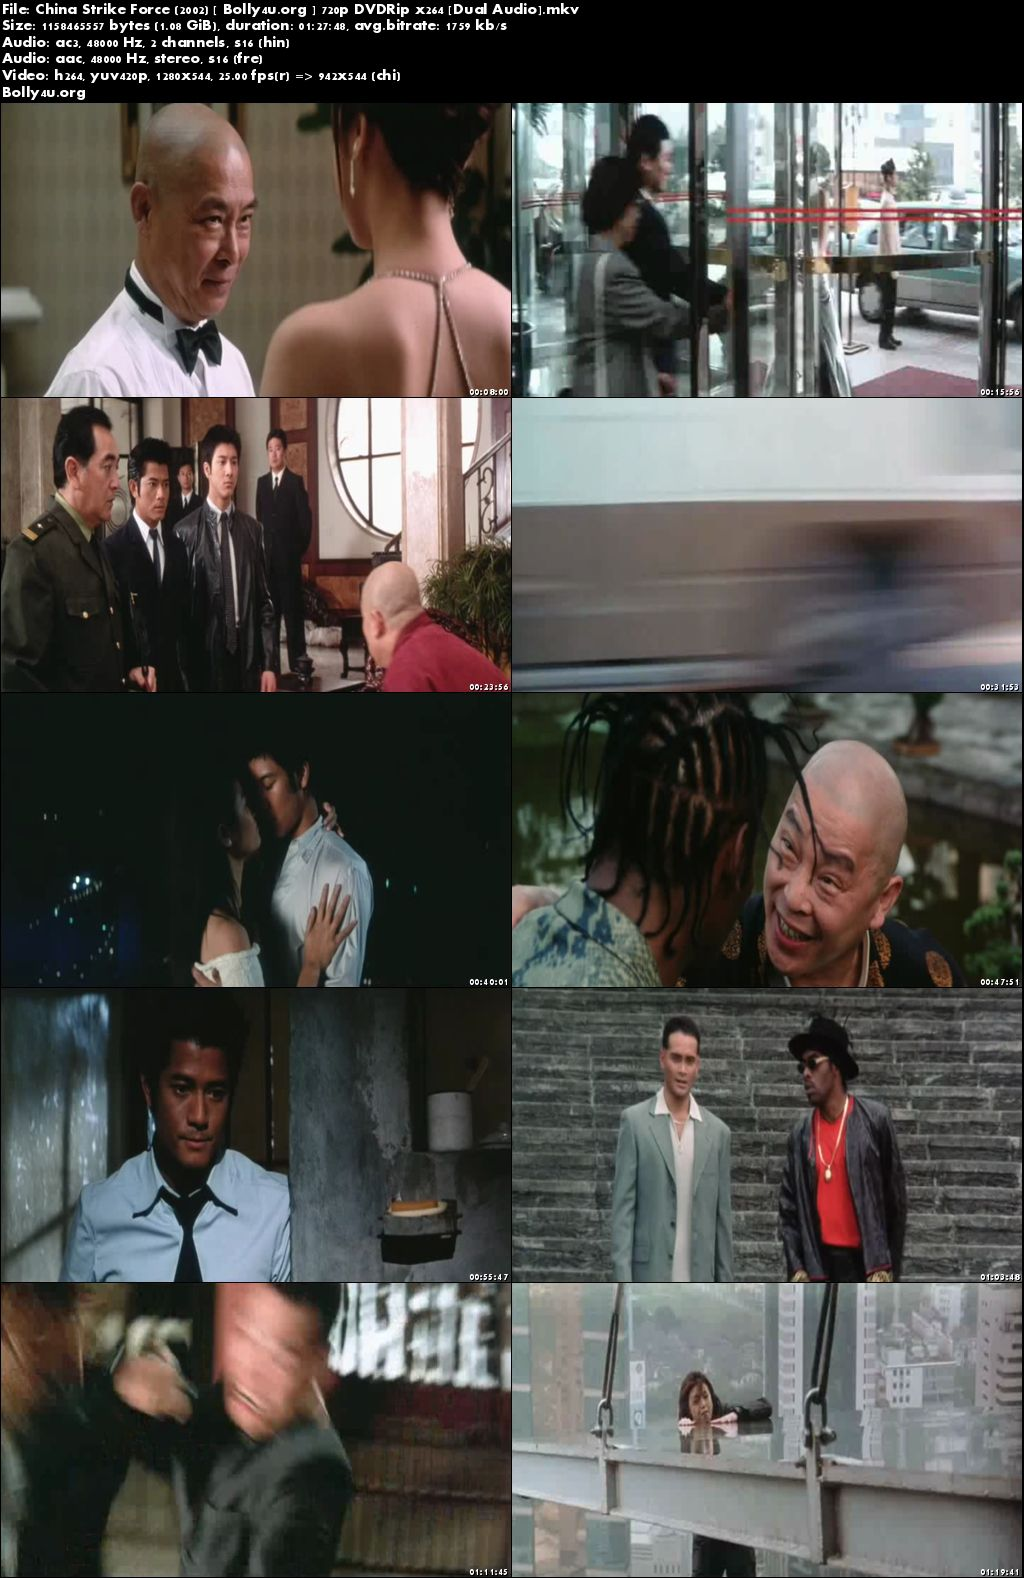 China Strike Force 2002 DVDRip 720p Hindi Dubbed Dual Audio